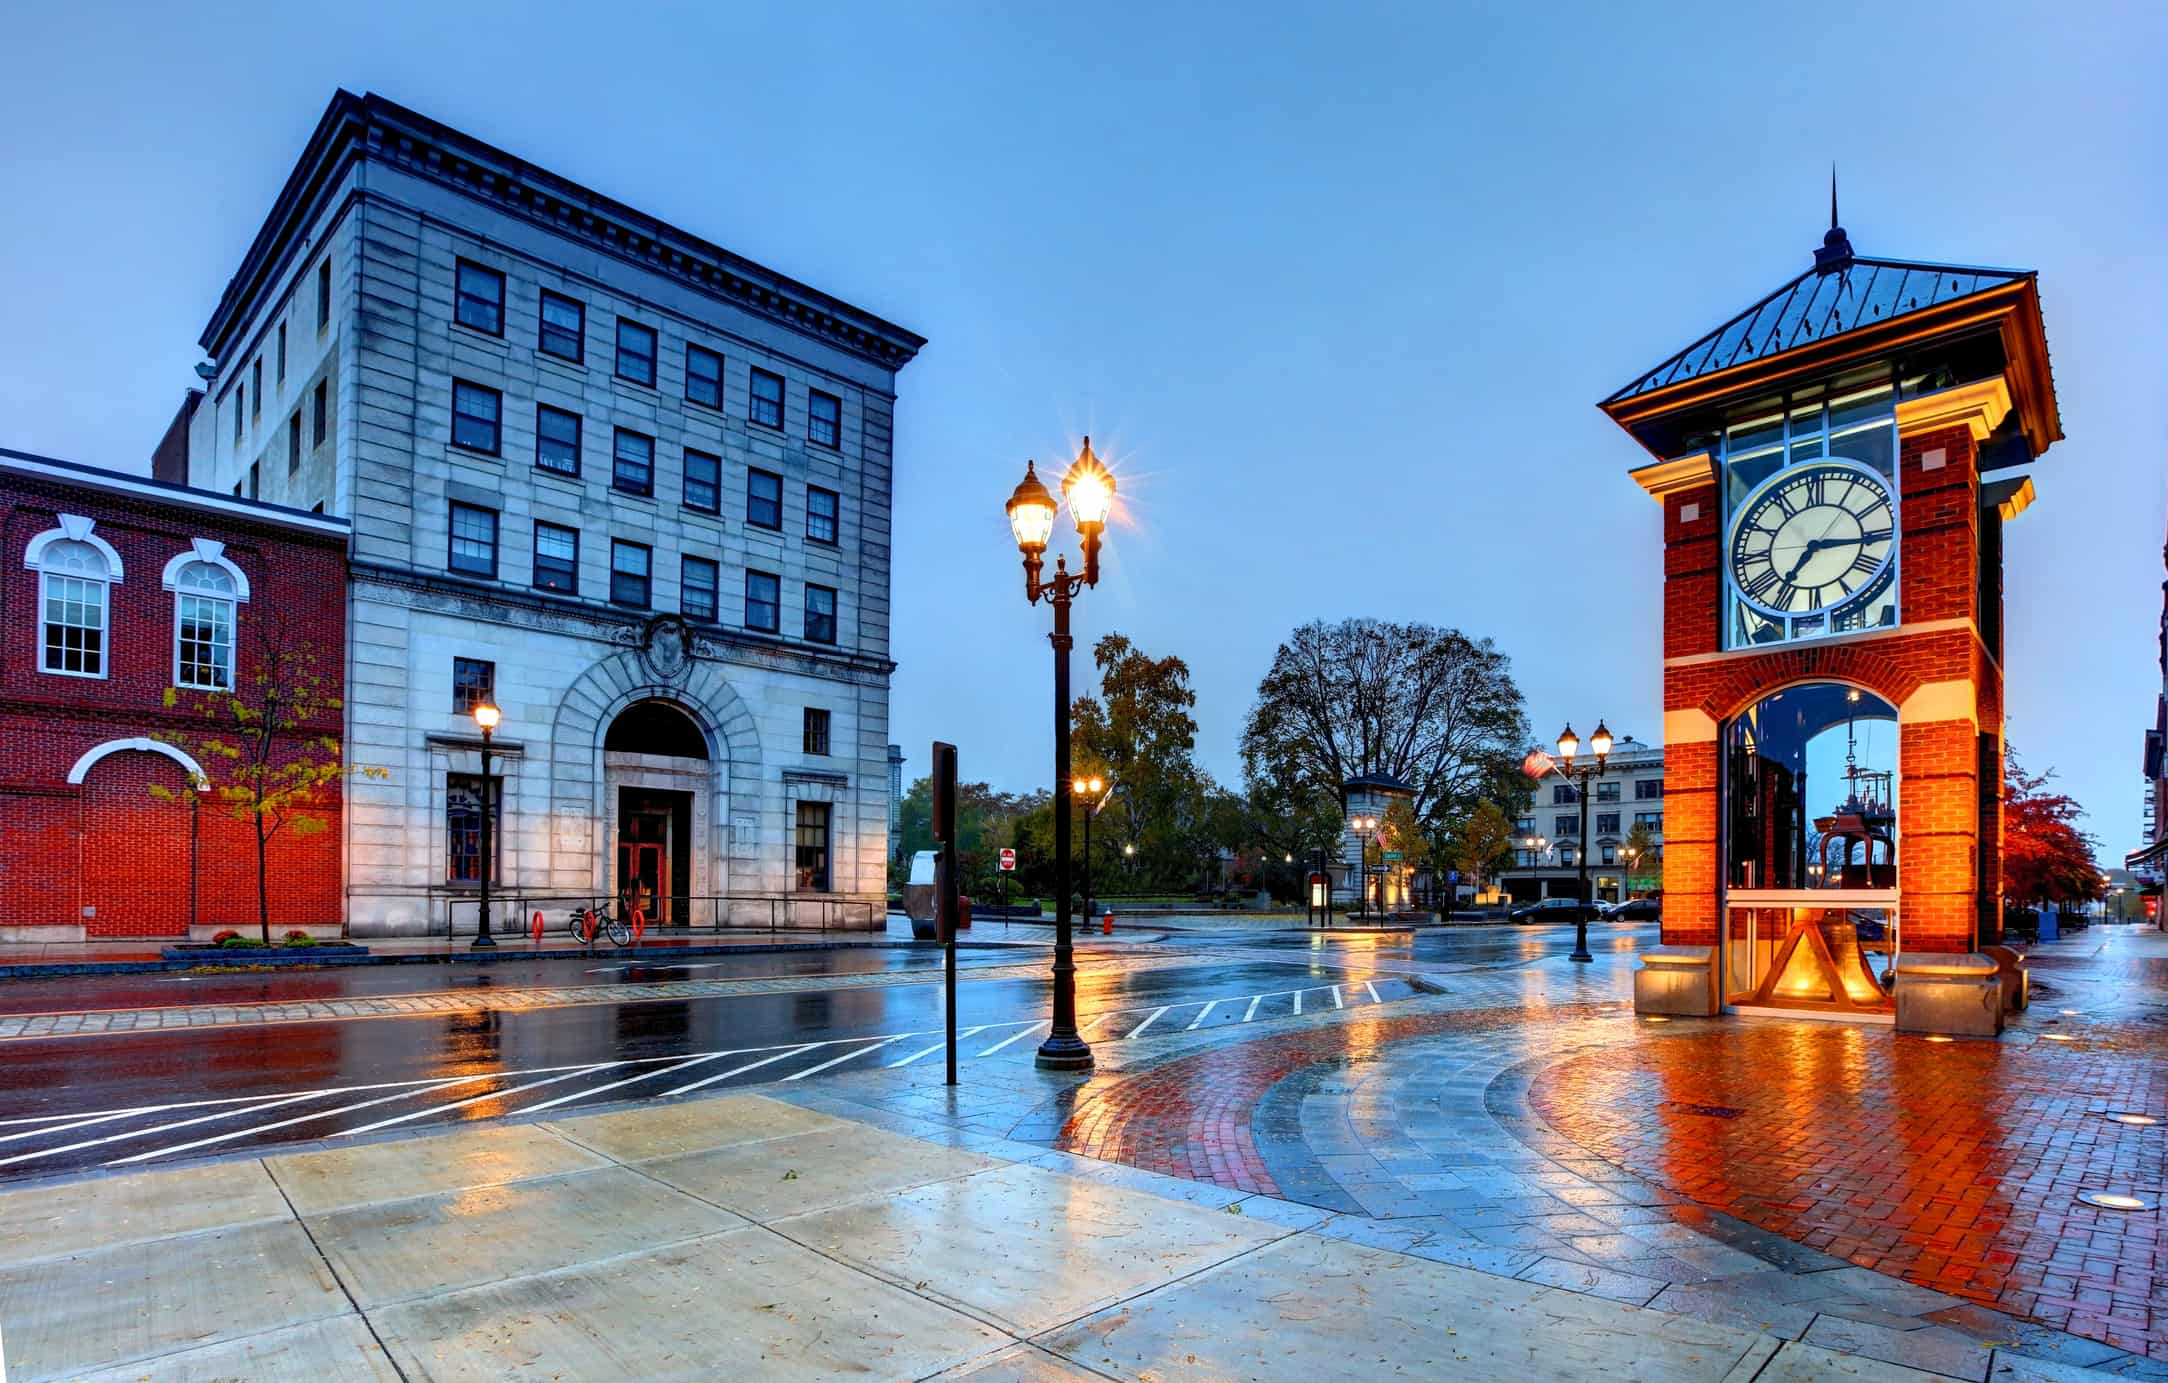 Concord is the capital city of the U.S. state of New Hampshire and the county seat of Merrimack County.